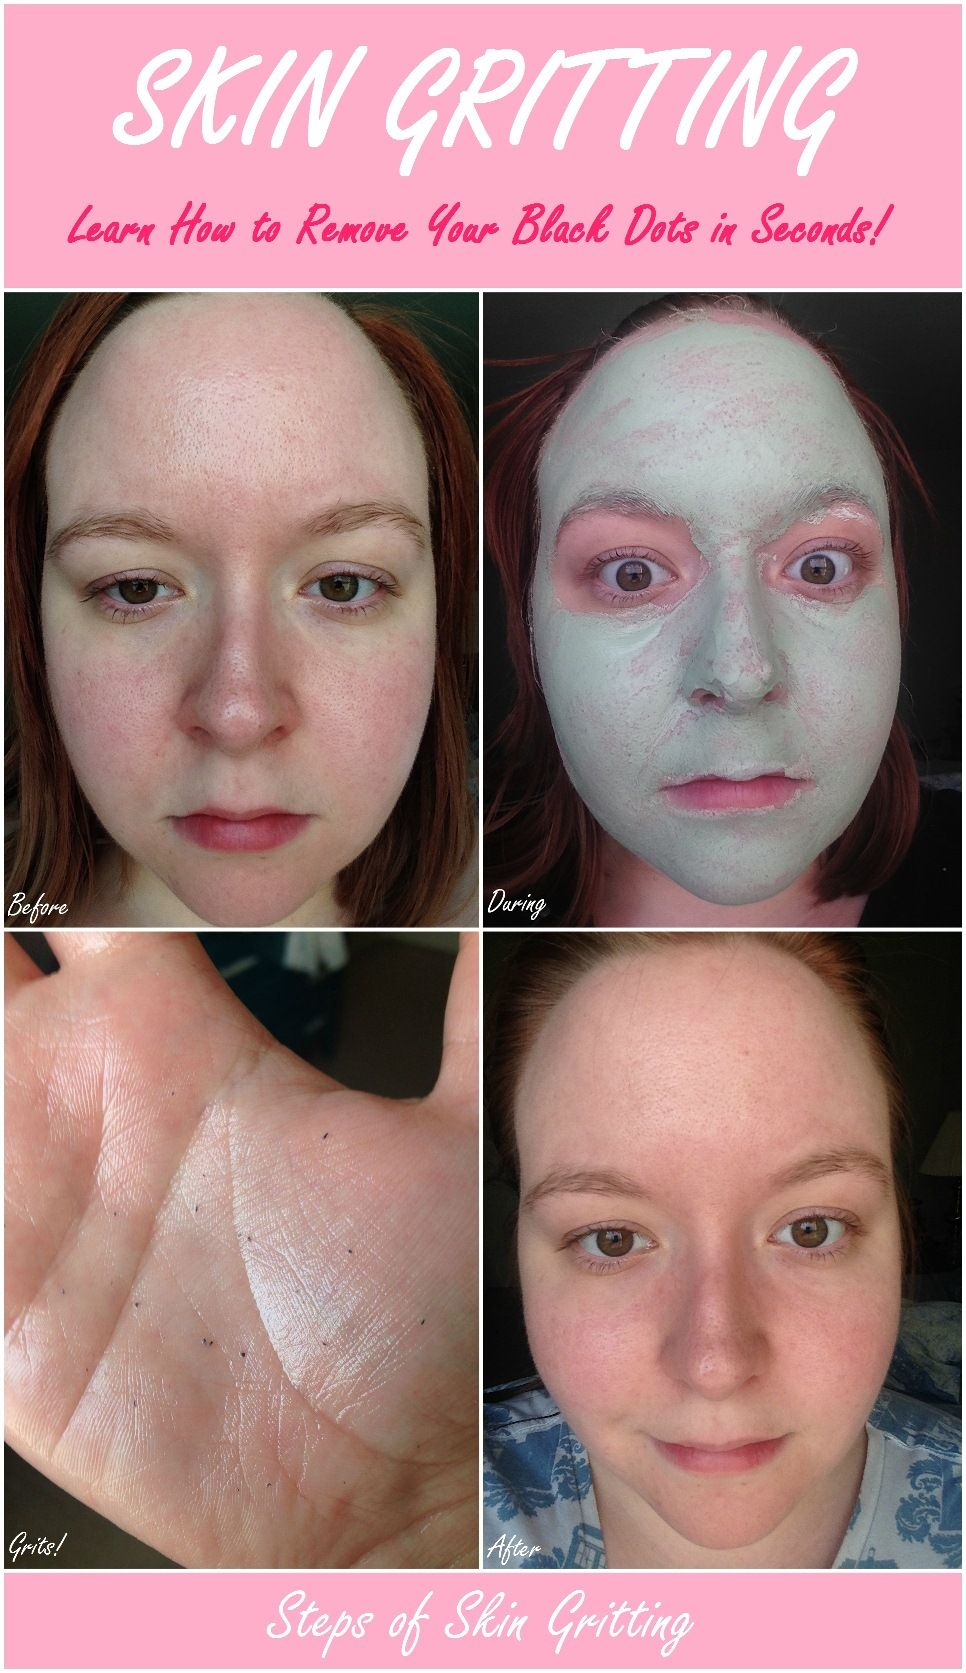 Skin Gritting: Learn How to Remove Your Black Dots in Seconds